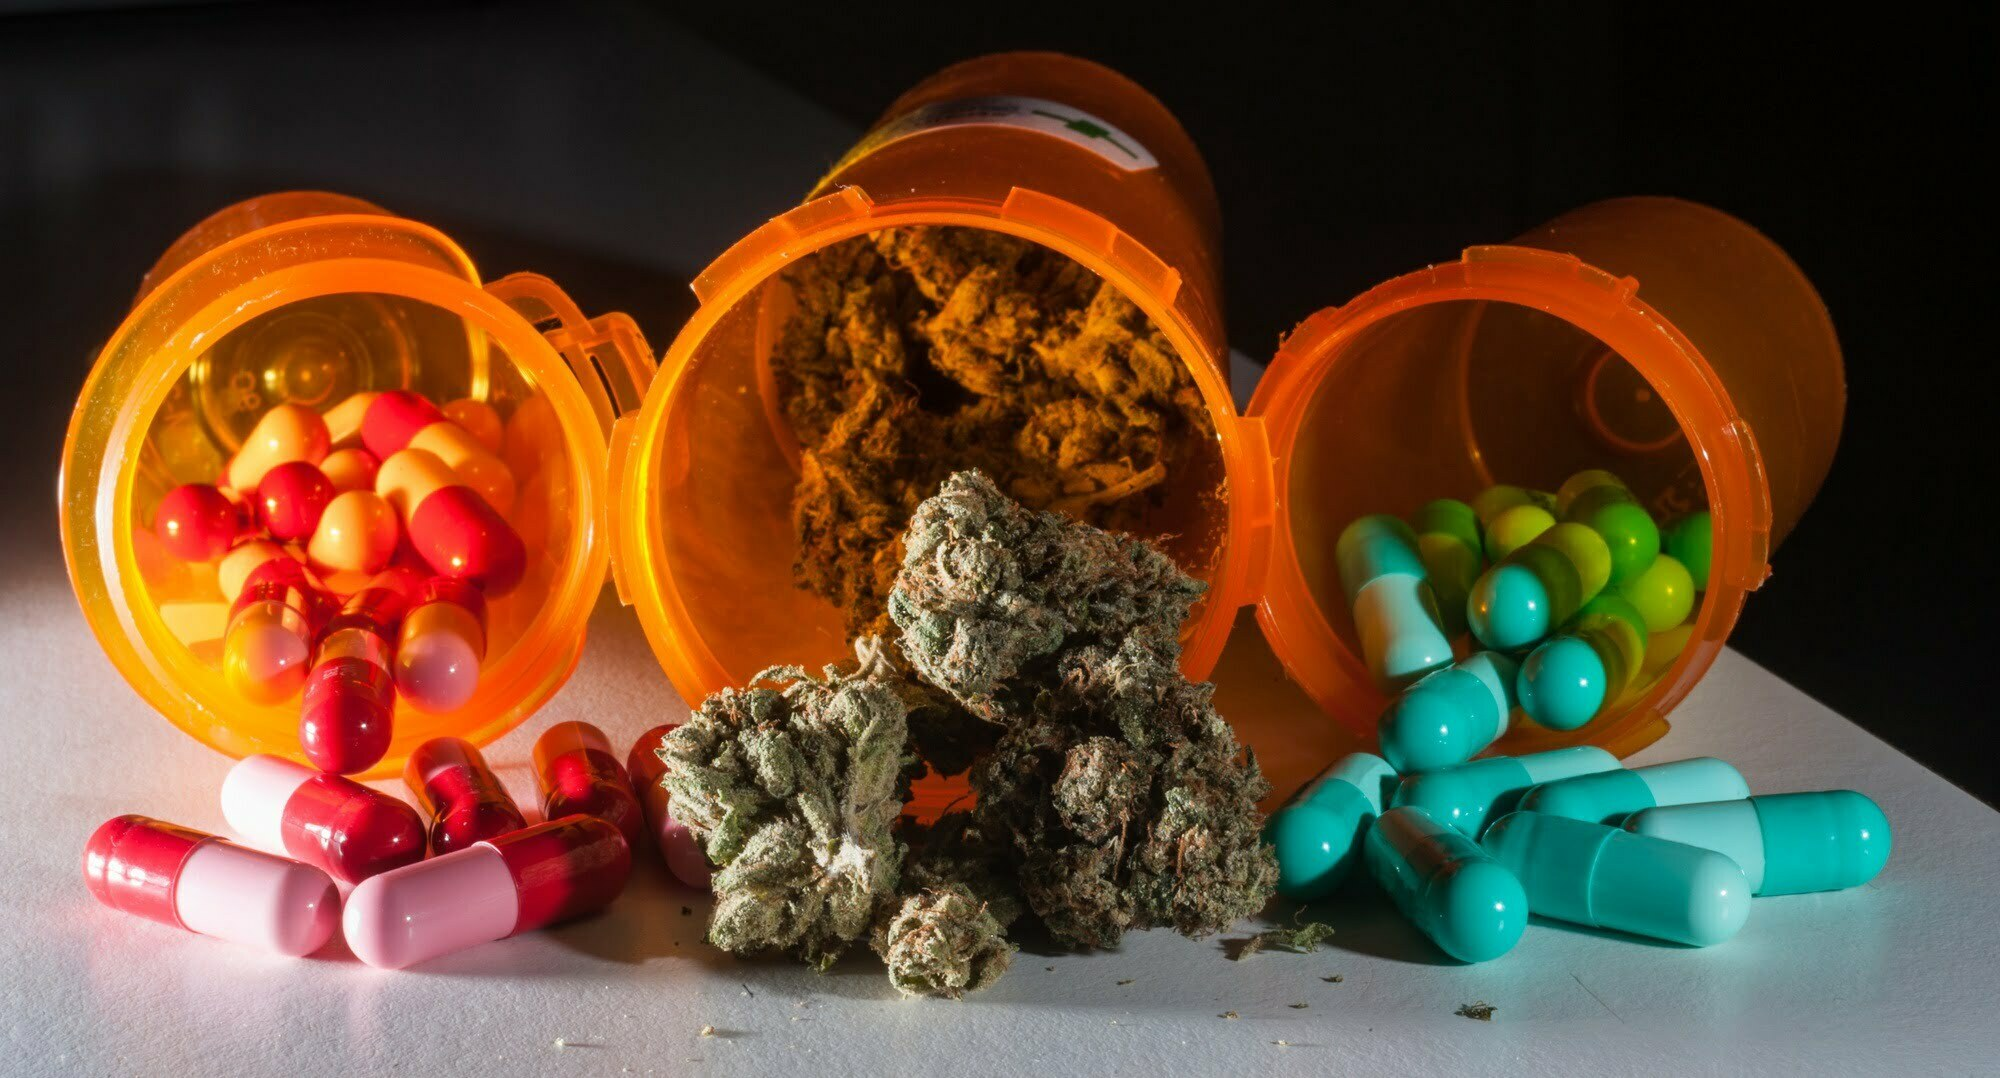 Medical Marijuana and pharmaceutical pills spilled out on a surface